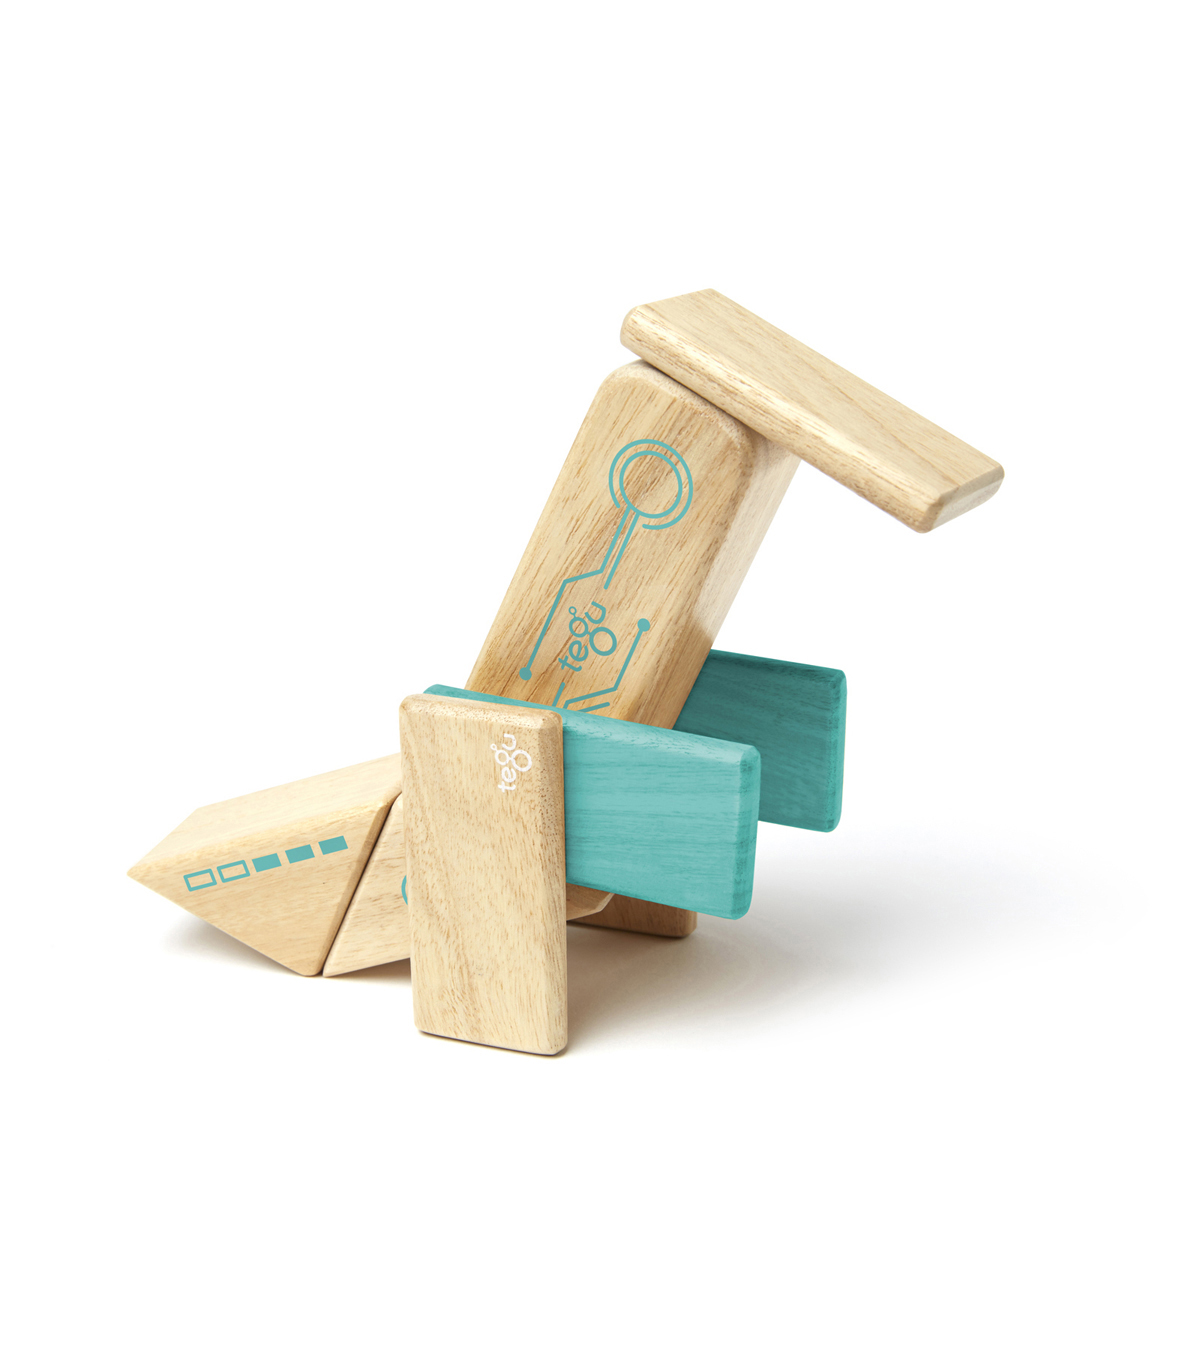 Robo Wooden Block Set